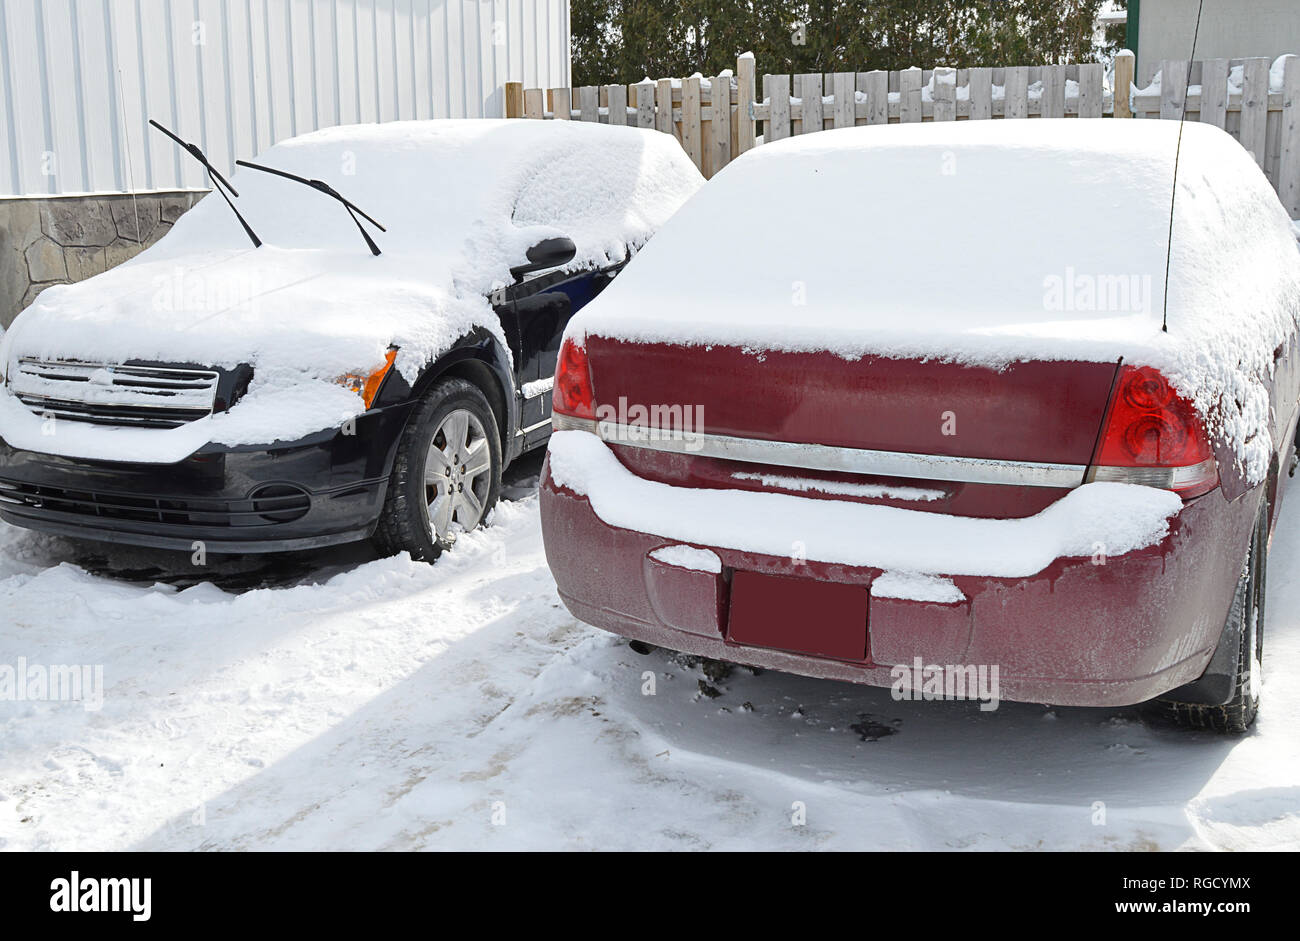 Two cars covered in freshly fallen snow during a typical canadian Winter day - Stock Image